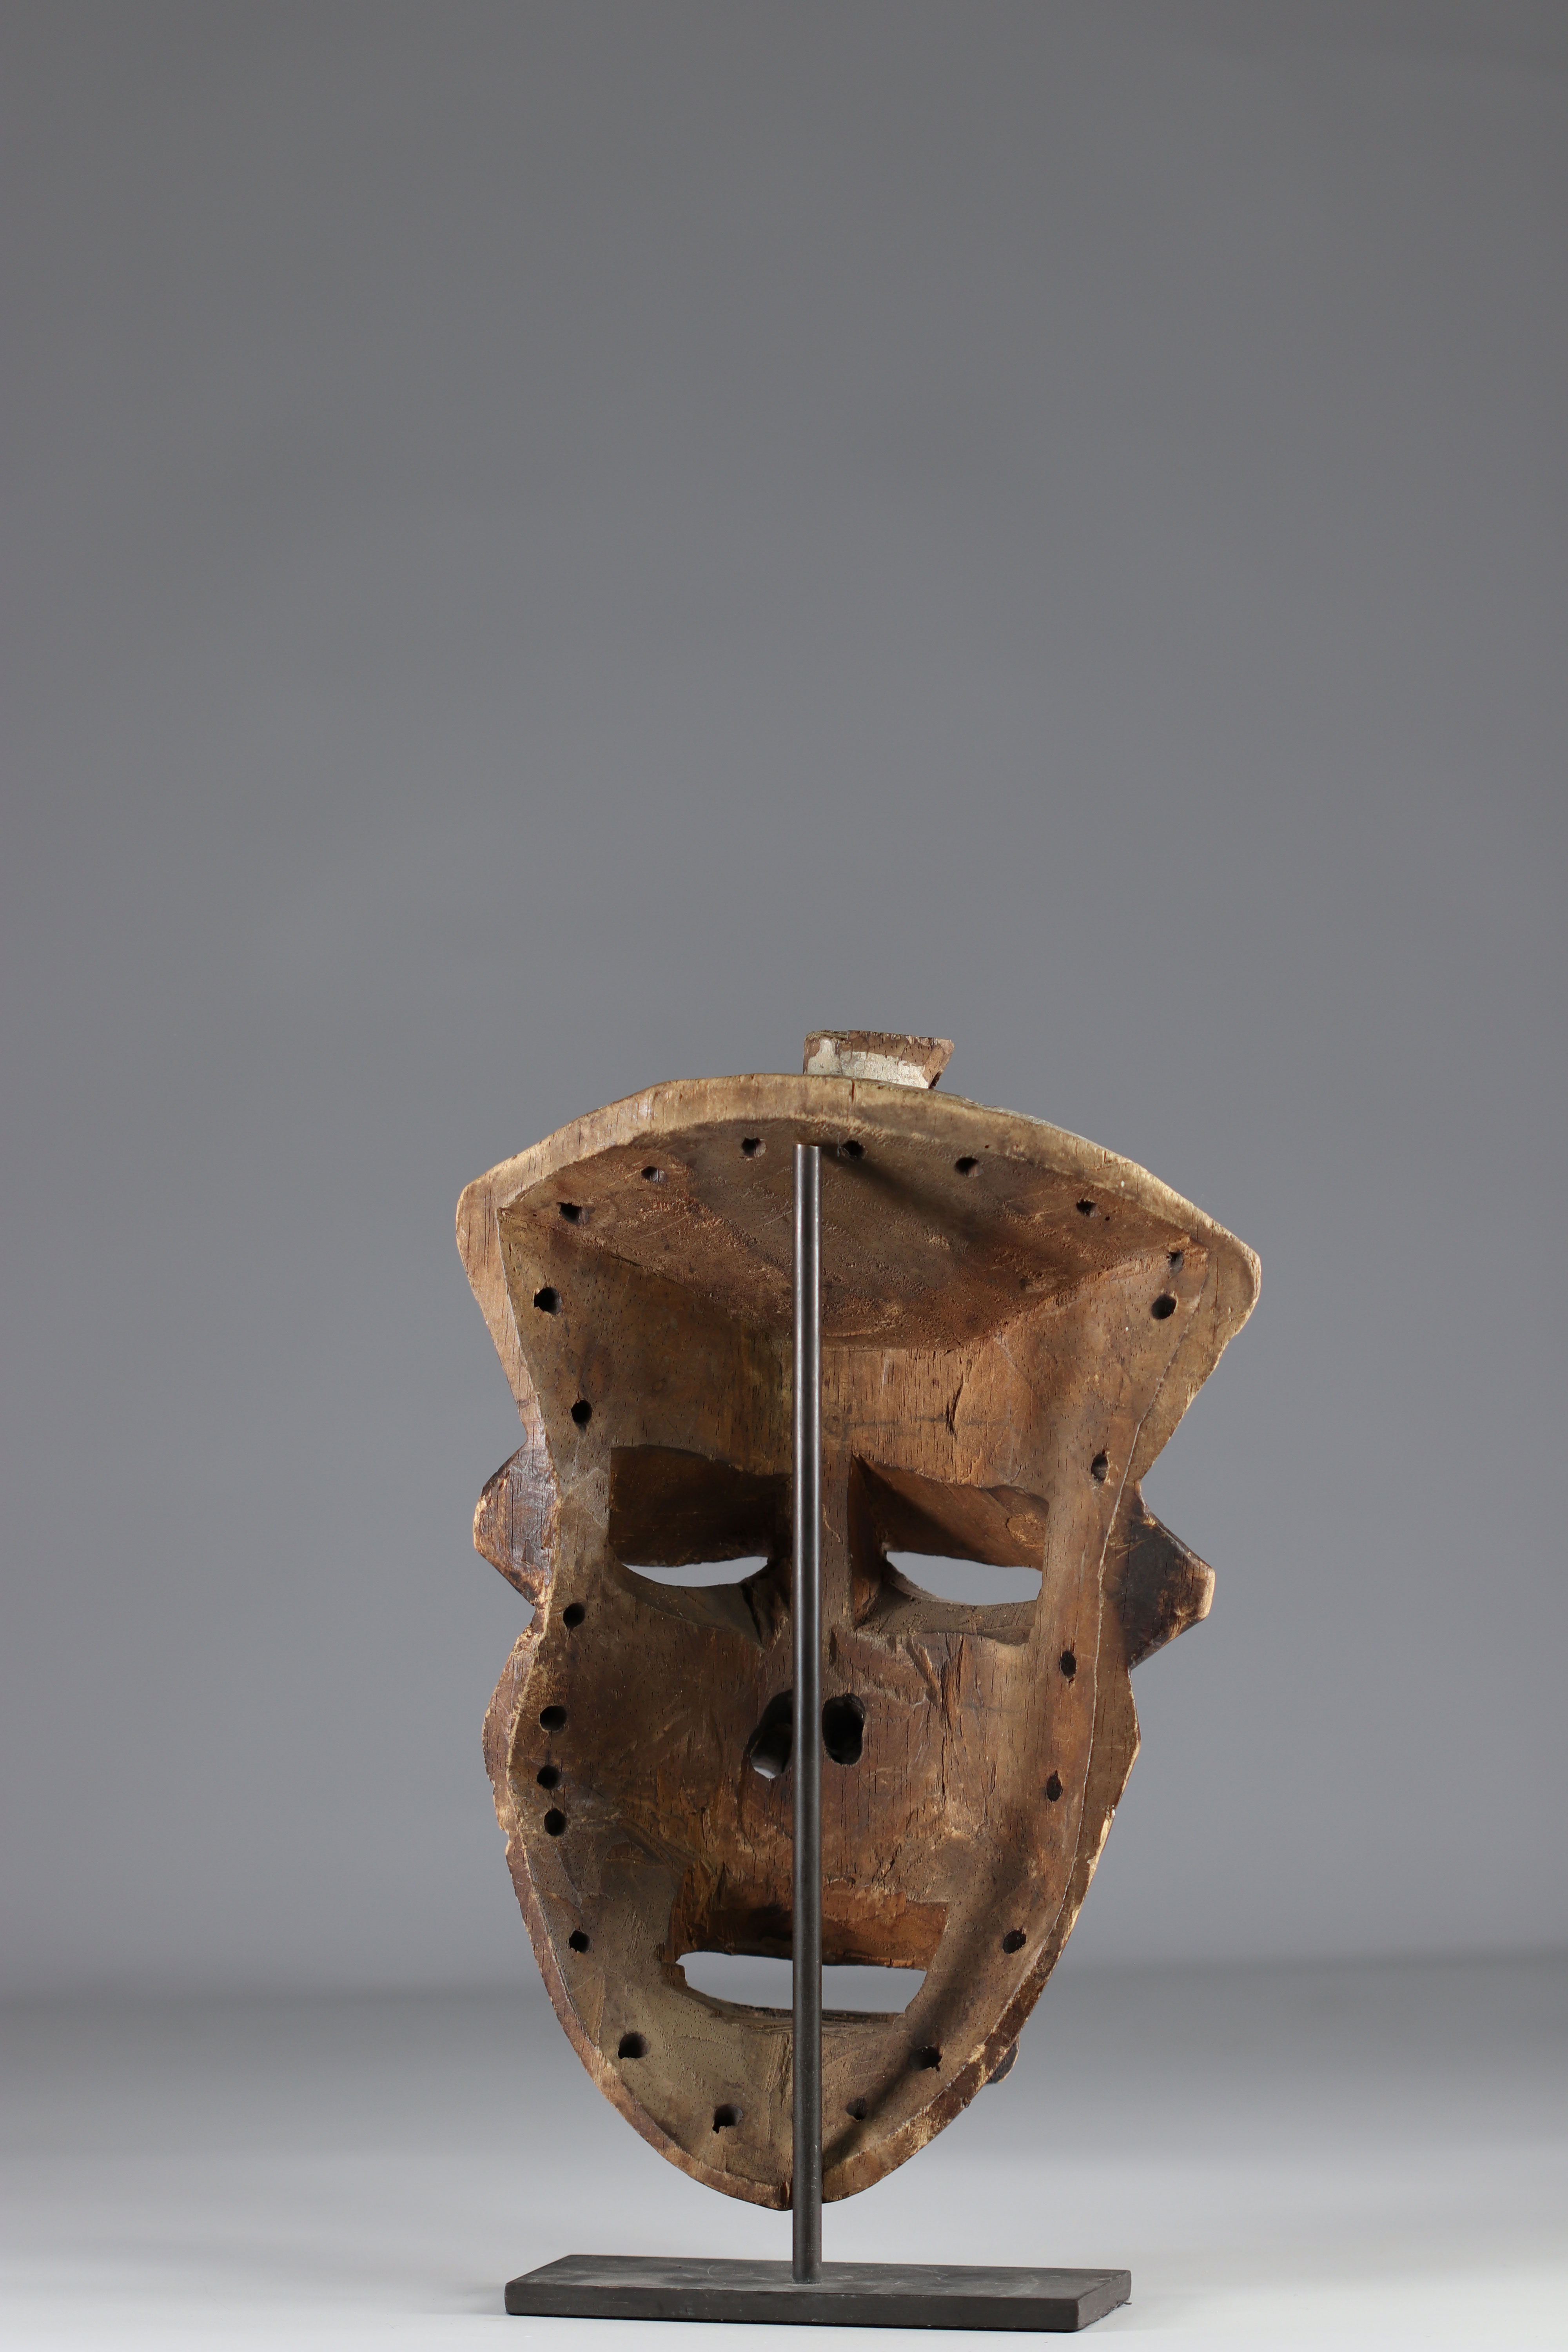 Rare expressive Pende mask. - Ground floor mid-20th - Image 4 of 4